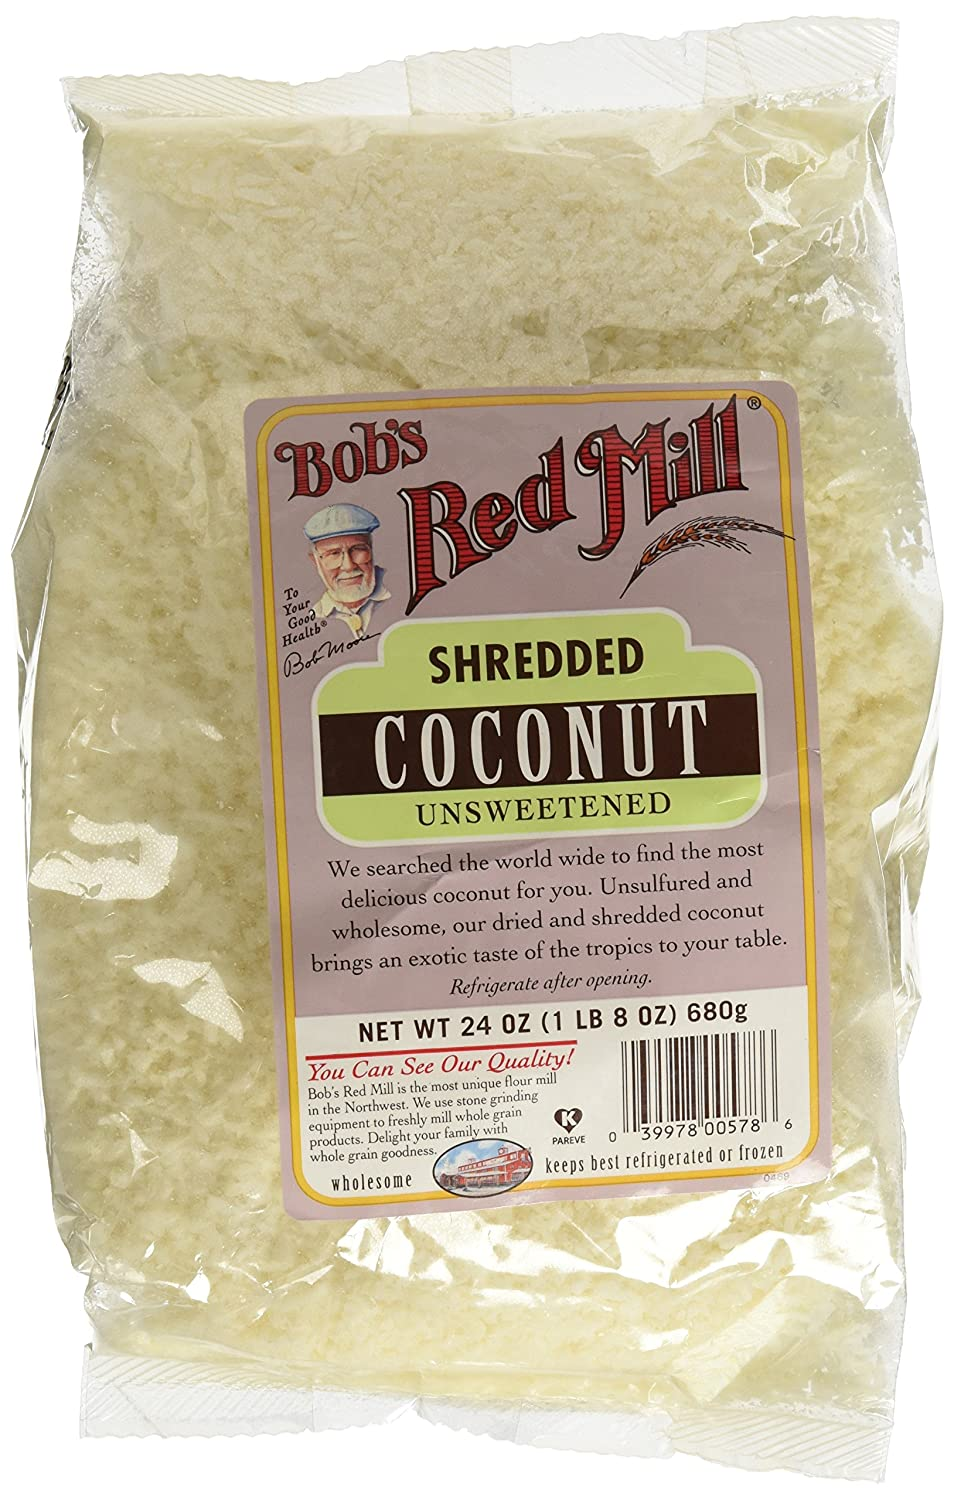 Bob's Red Mill, Medium Shredded Coconut, Unsweetened, 24 oz (680 g)